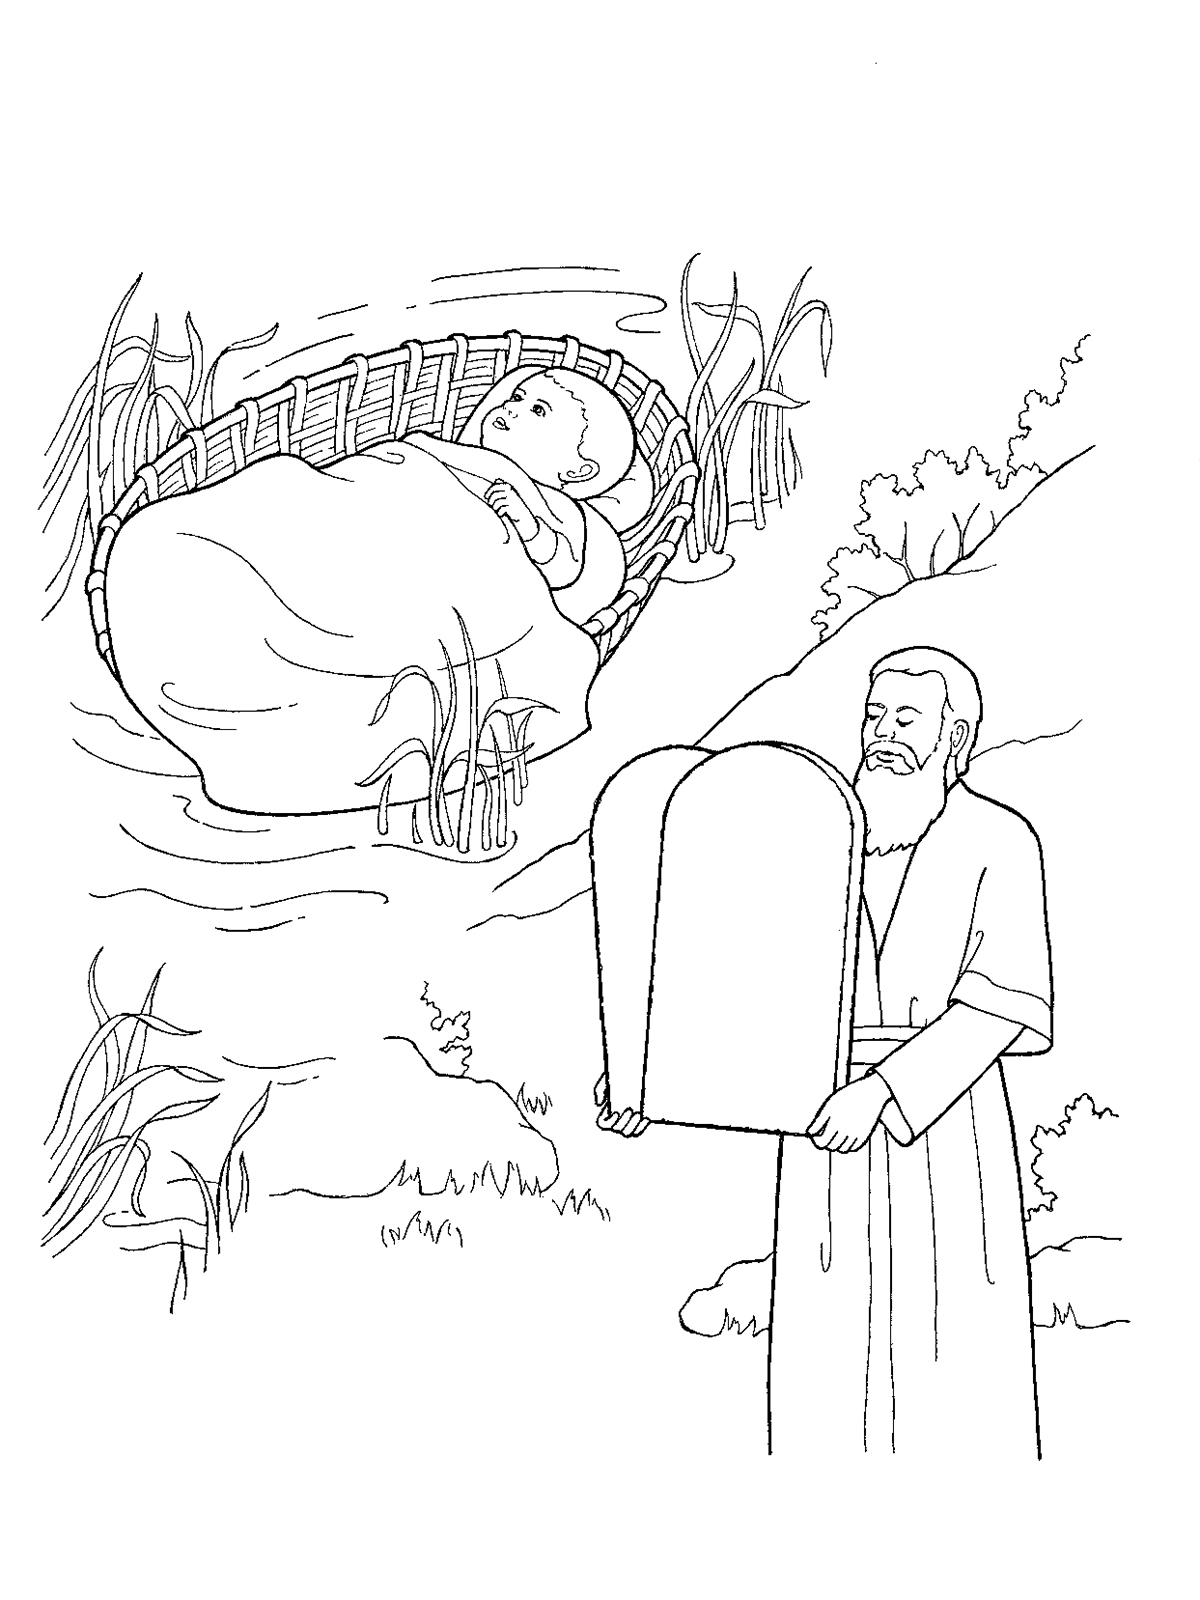 Coloring pages moses and ten commandments - Share